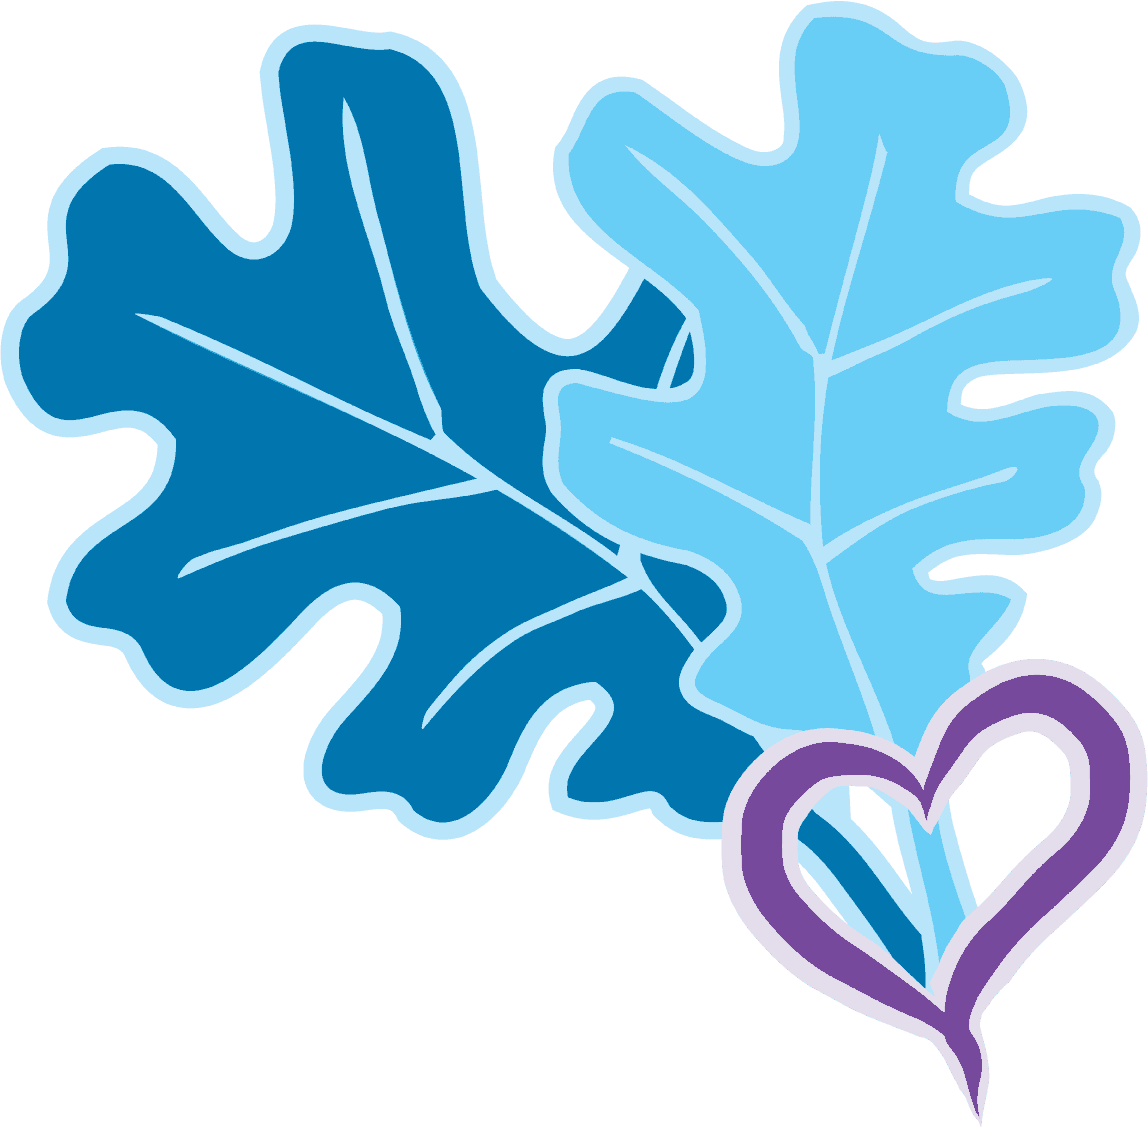 two Oak leaves and heart